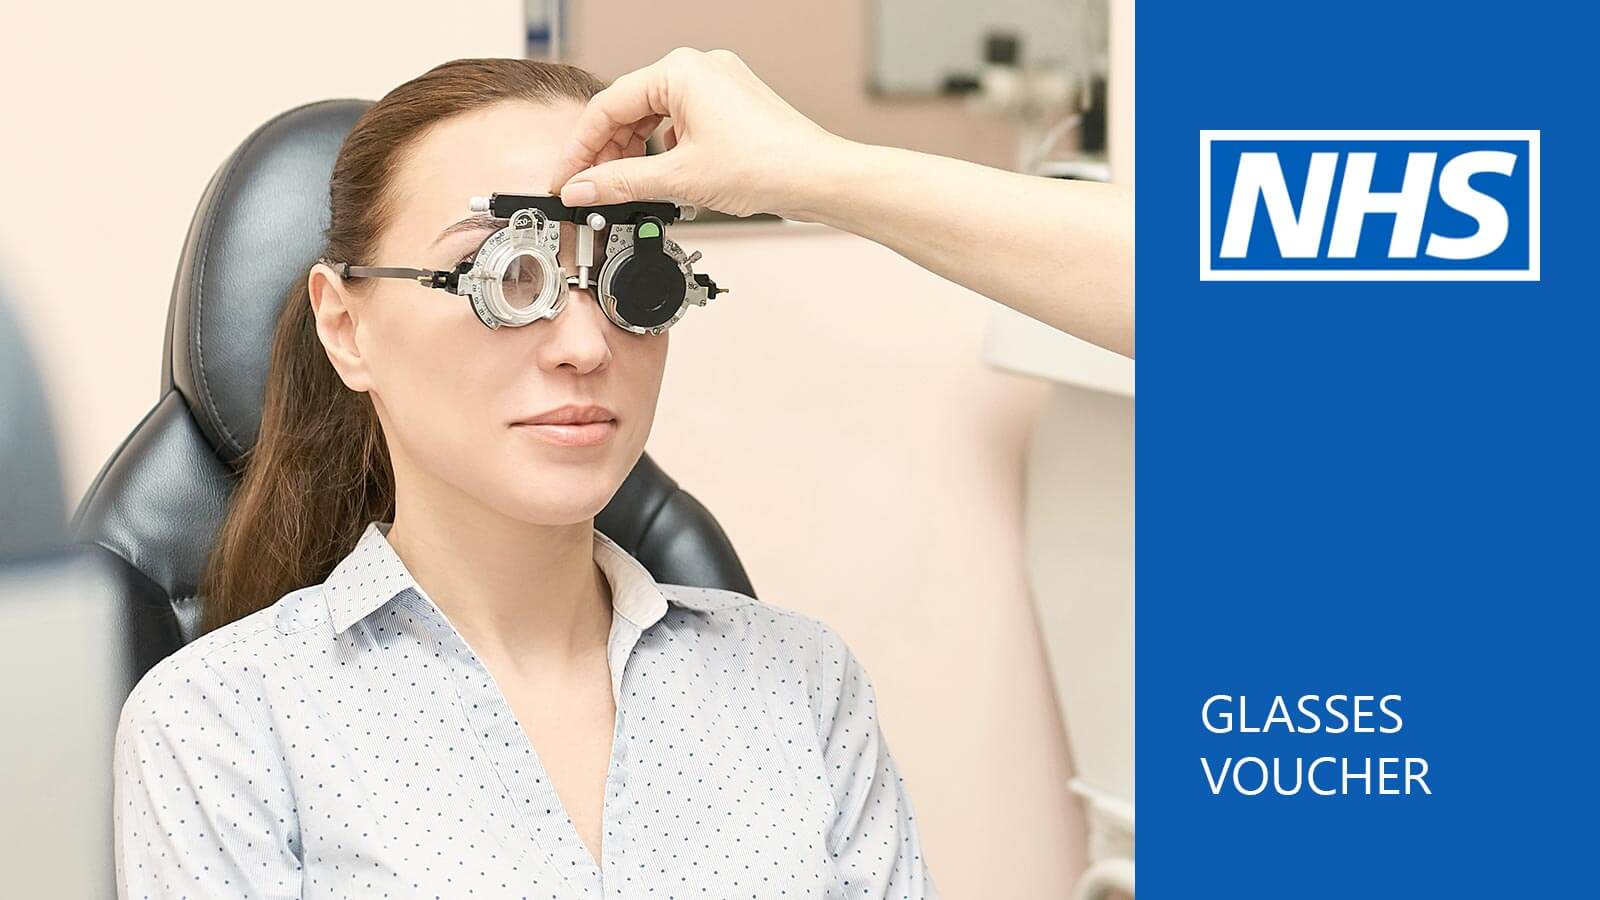 NHS glasses voucher - How much is it worth and what's the eligibility criteria?